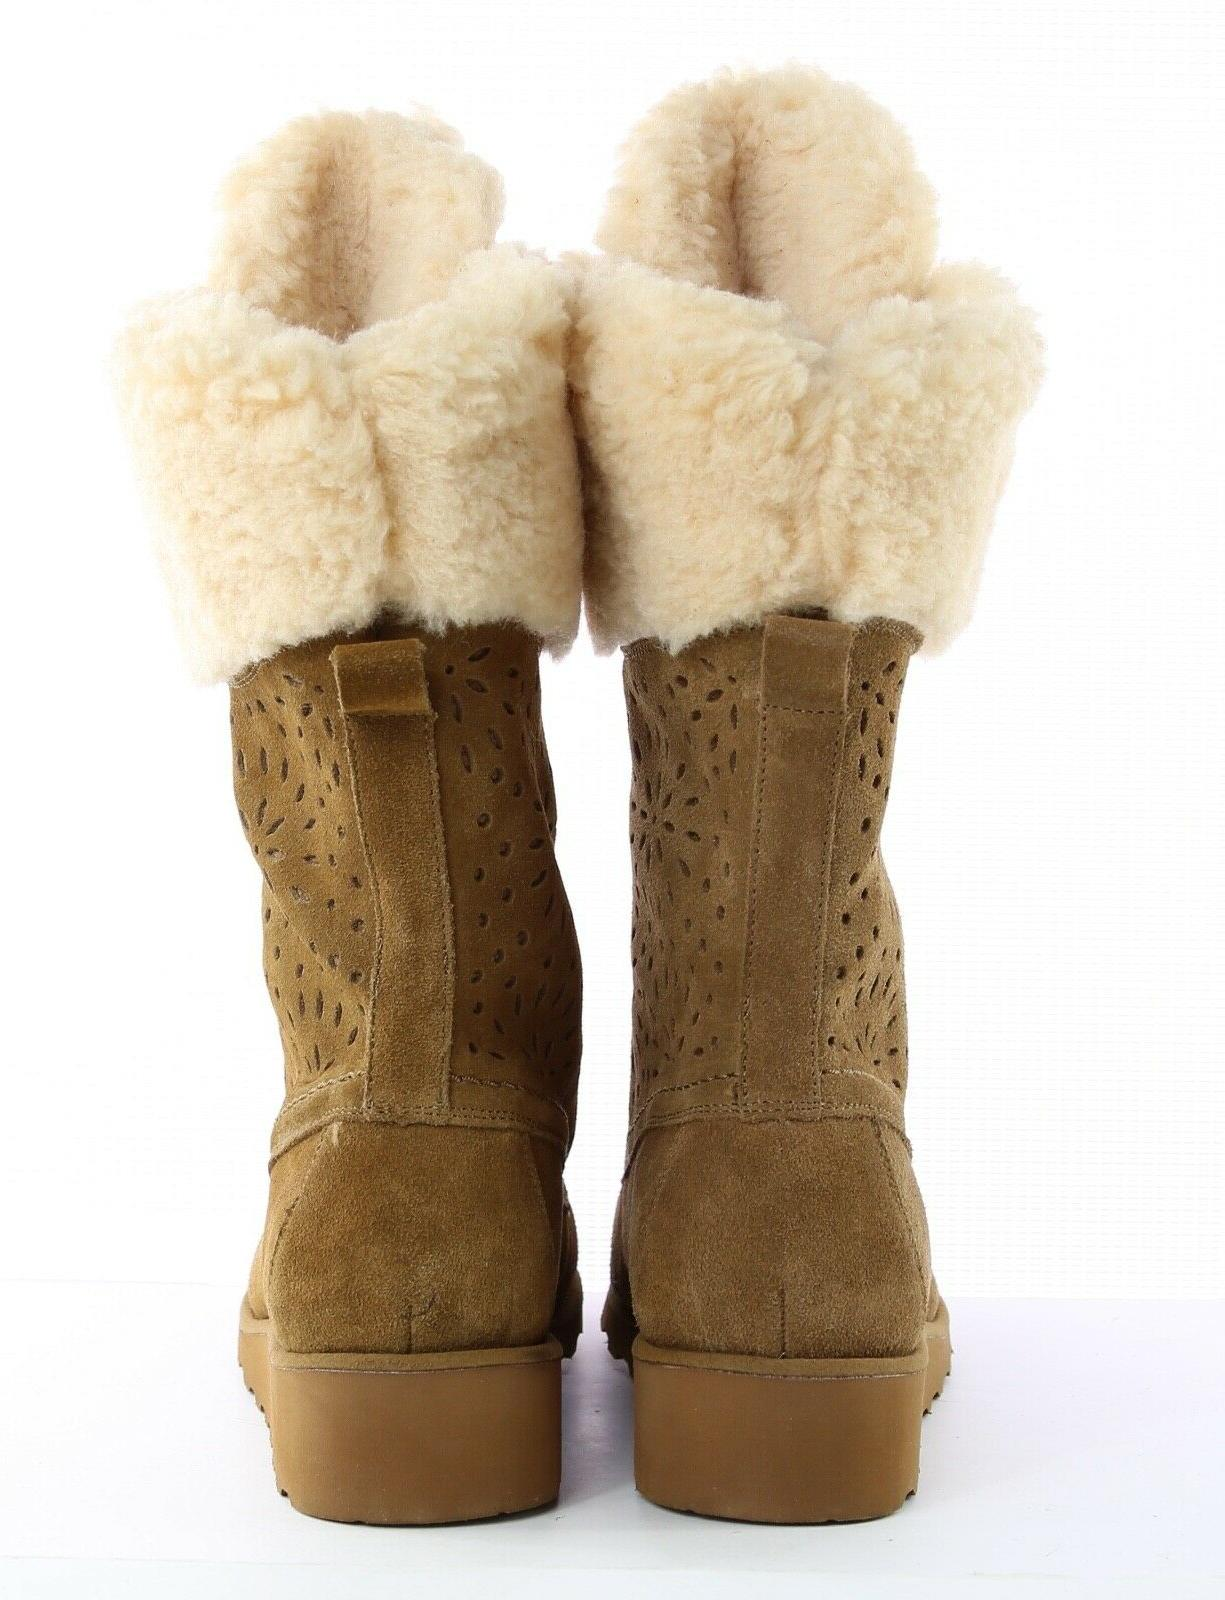 Womes Kylie Up Boots Hickory,